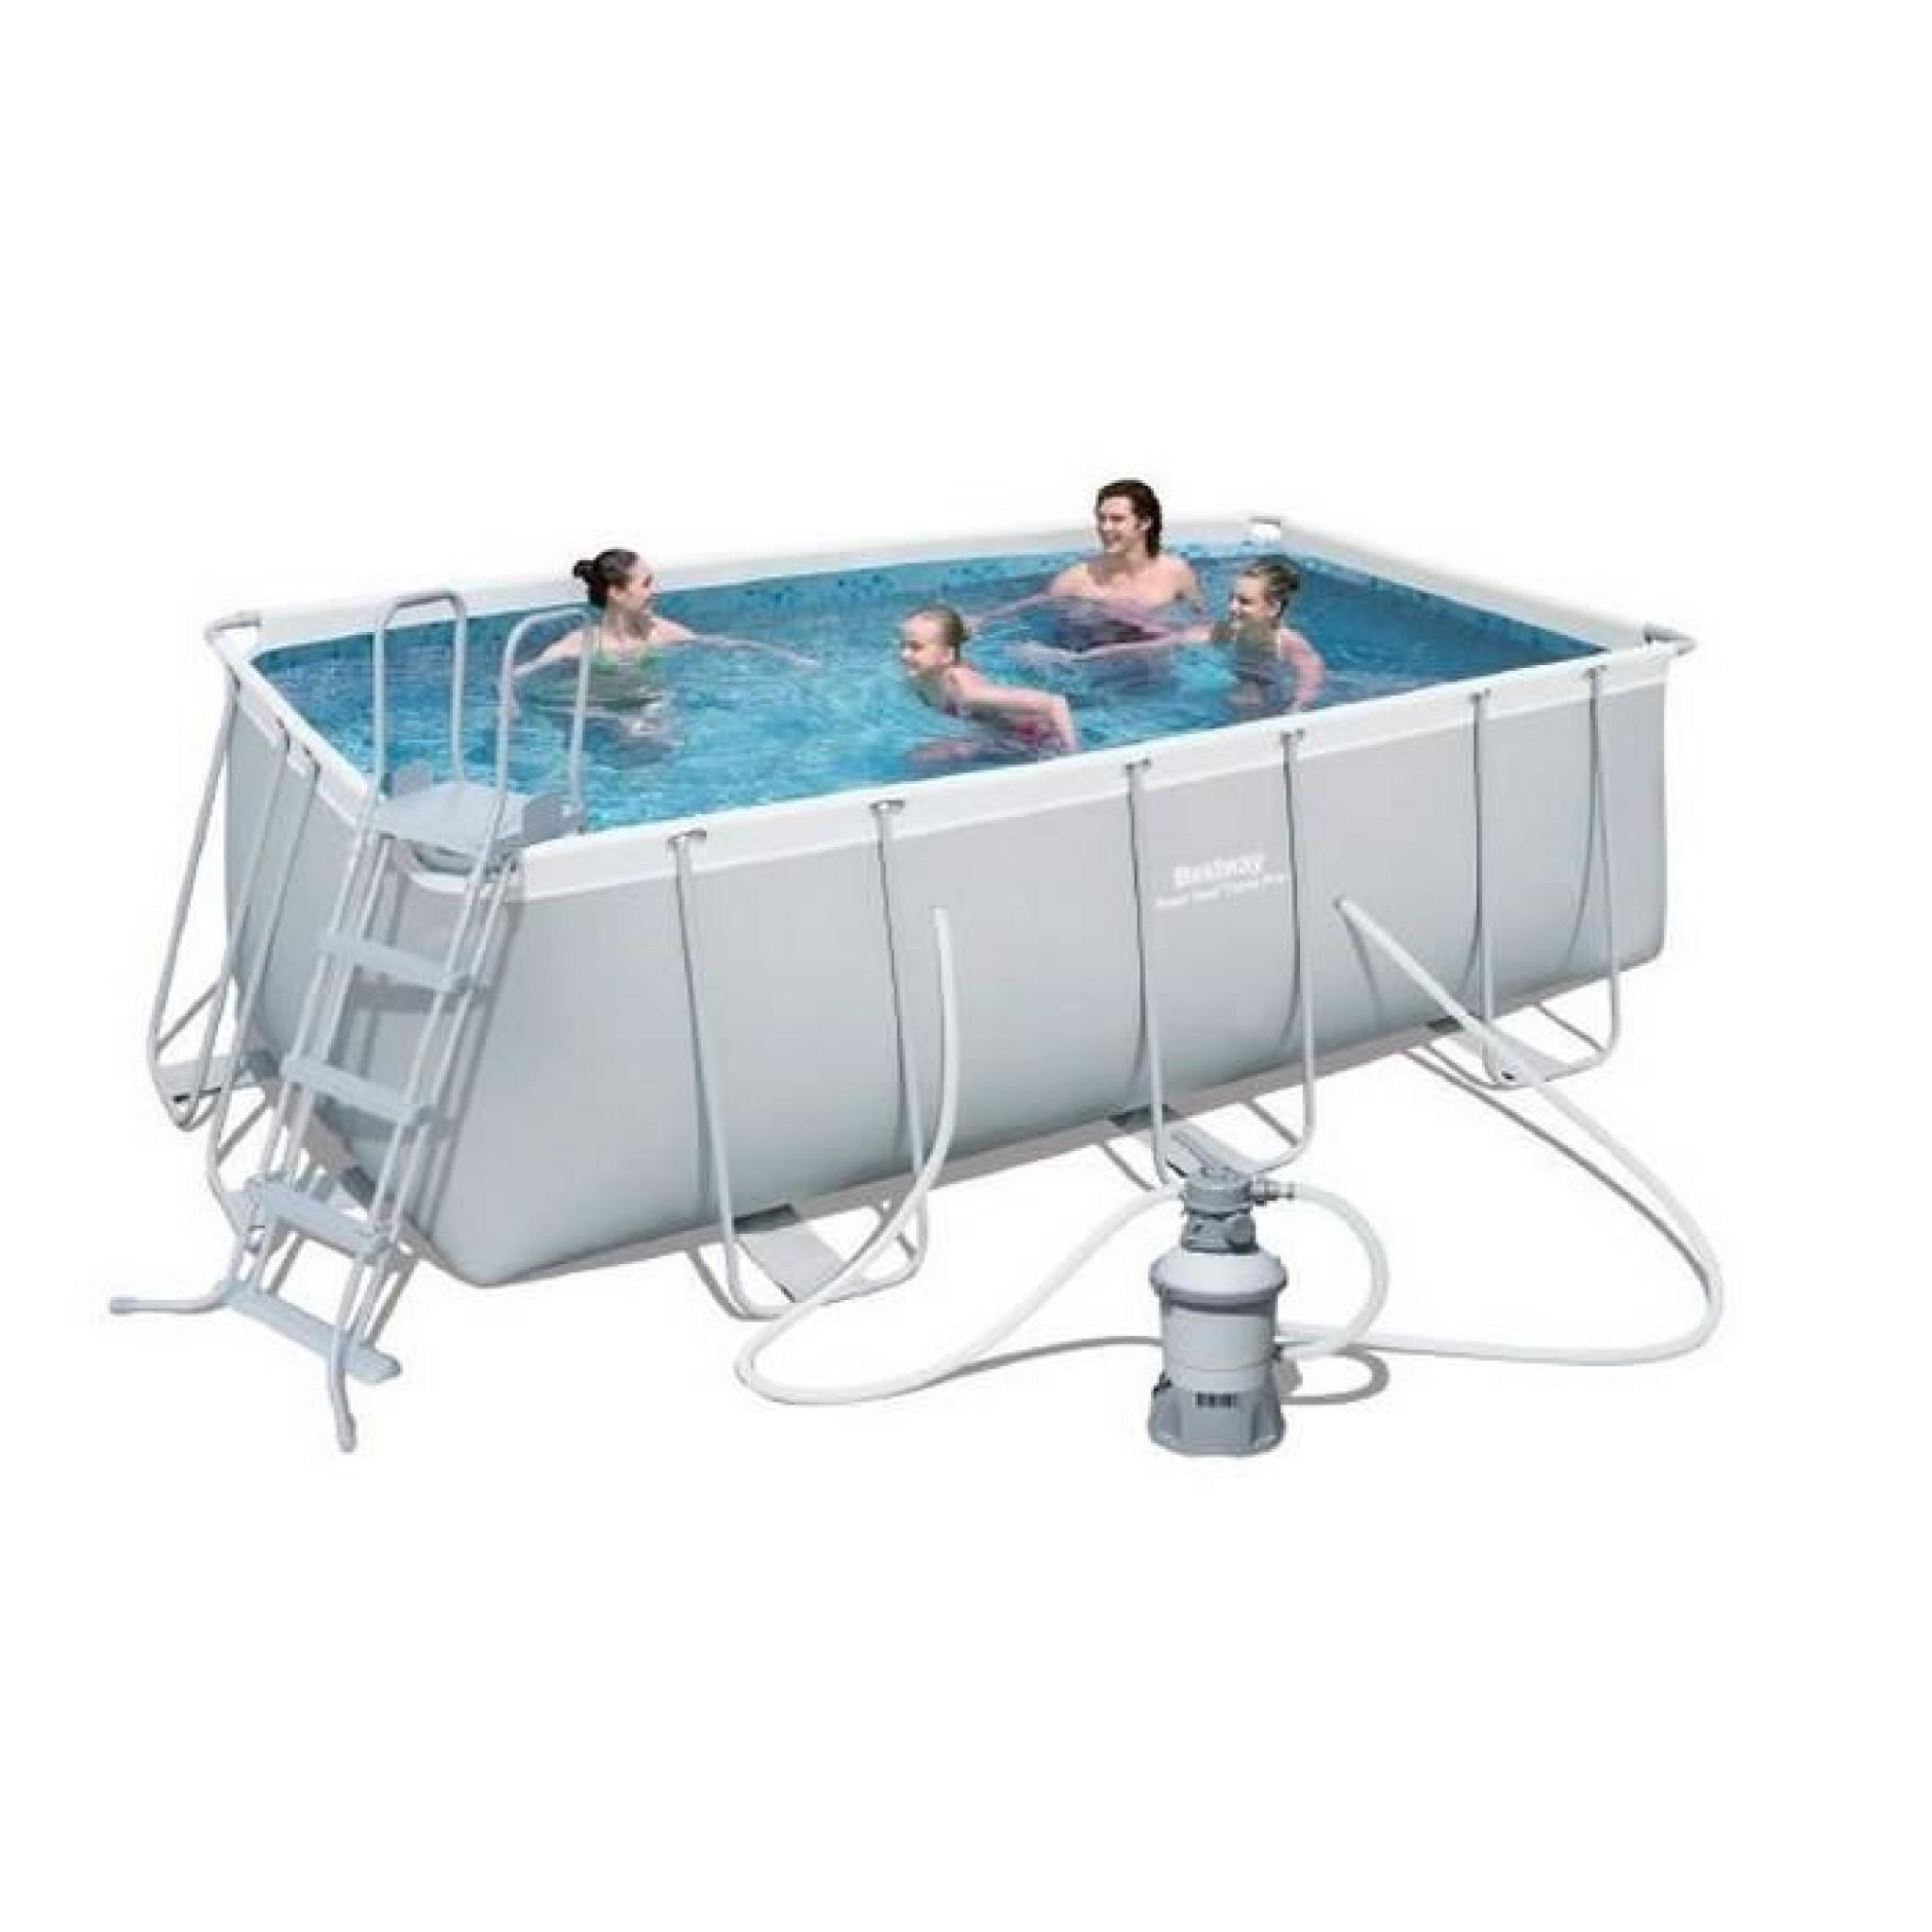 Bestway piscine tubulaire rectangulaire for Piscine tubulaire 1 22